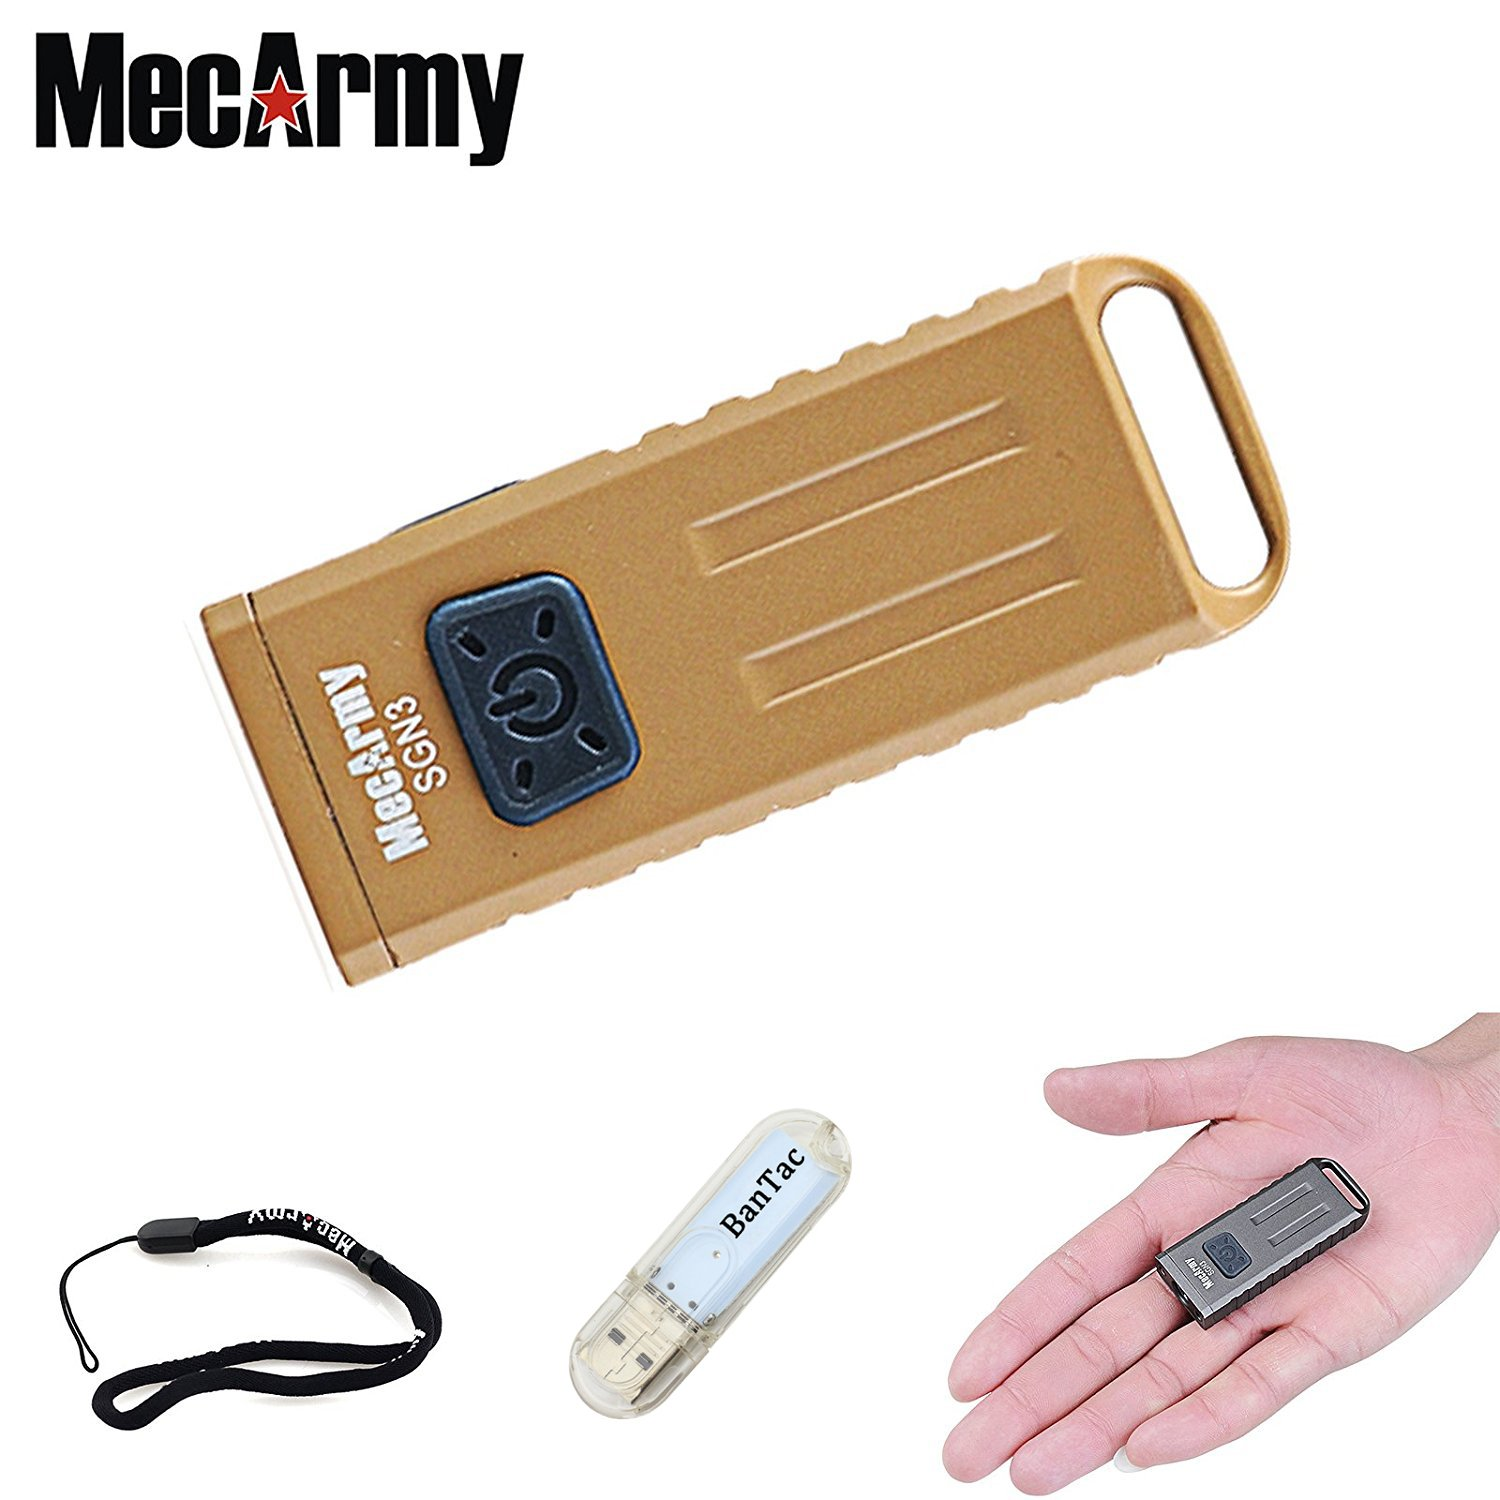 MecArmy SGN3 EDC Mini Torches 160 Lumen Micro Sized CREE XP-G2 LED Torch Rechargeable Waterproof Keychain Flashlight with UV and Red LEDs for Everyday Carry + THENINES USB Lights .LTD MecArmy-SGN3